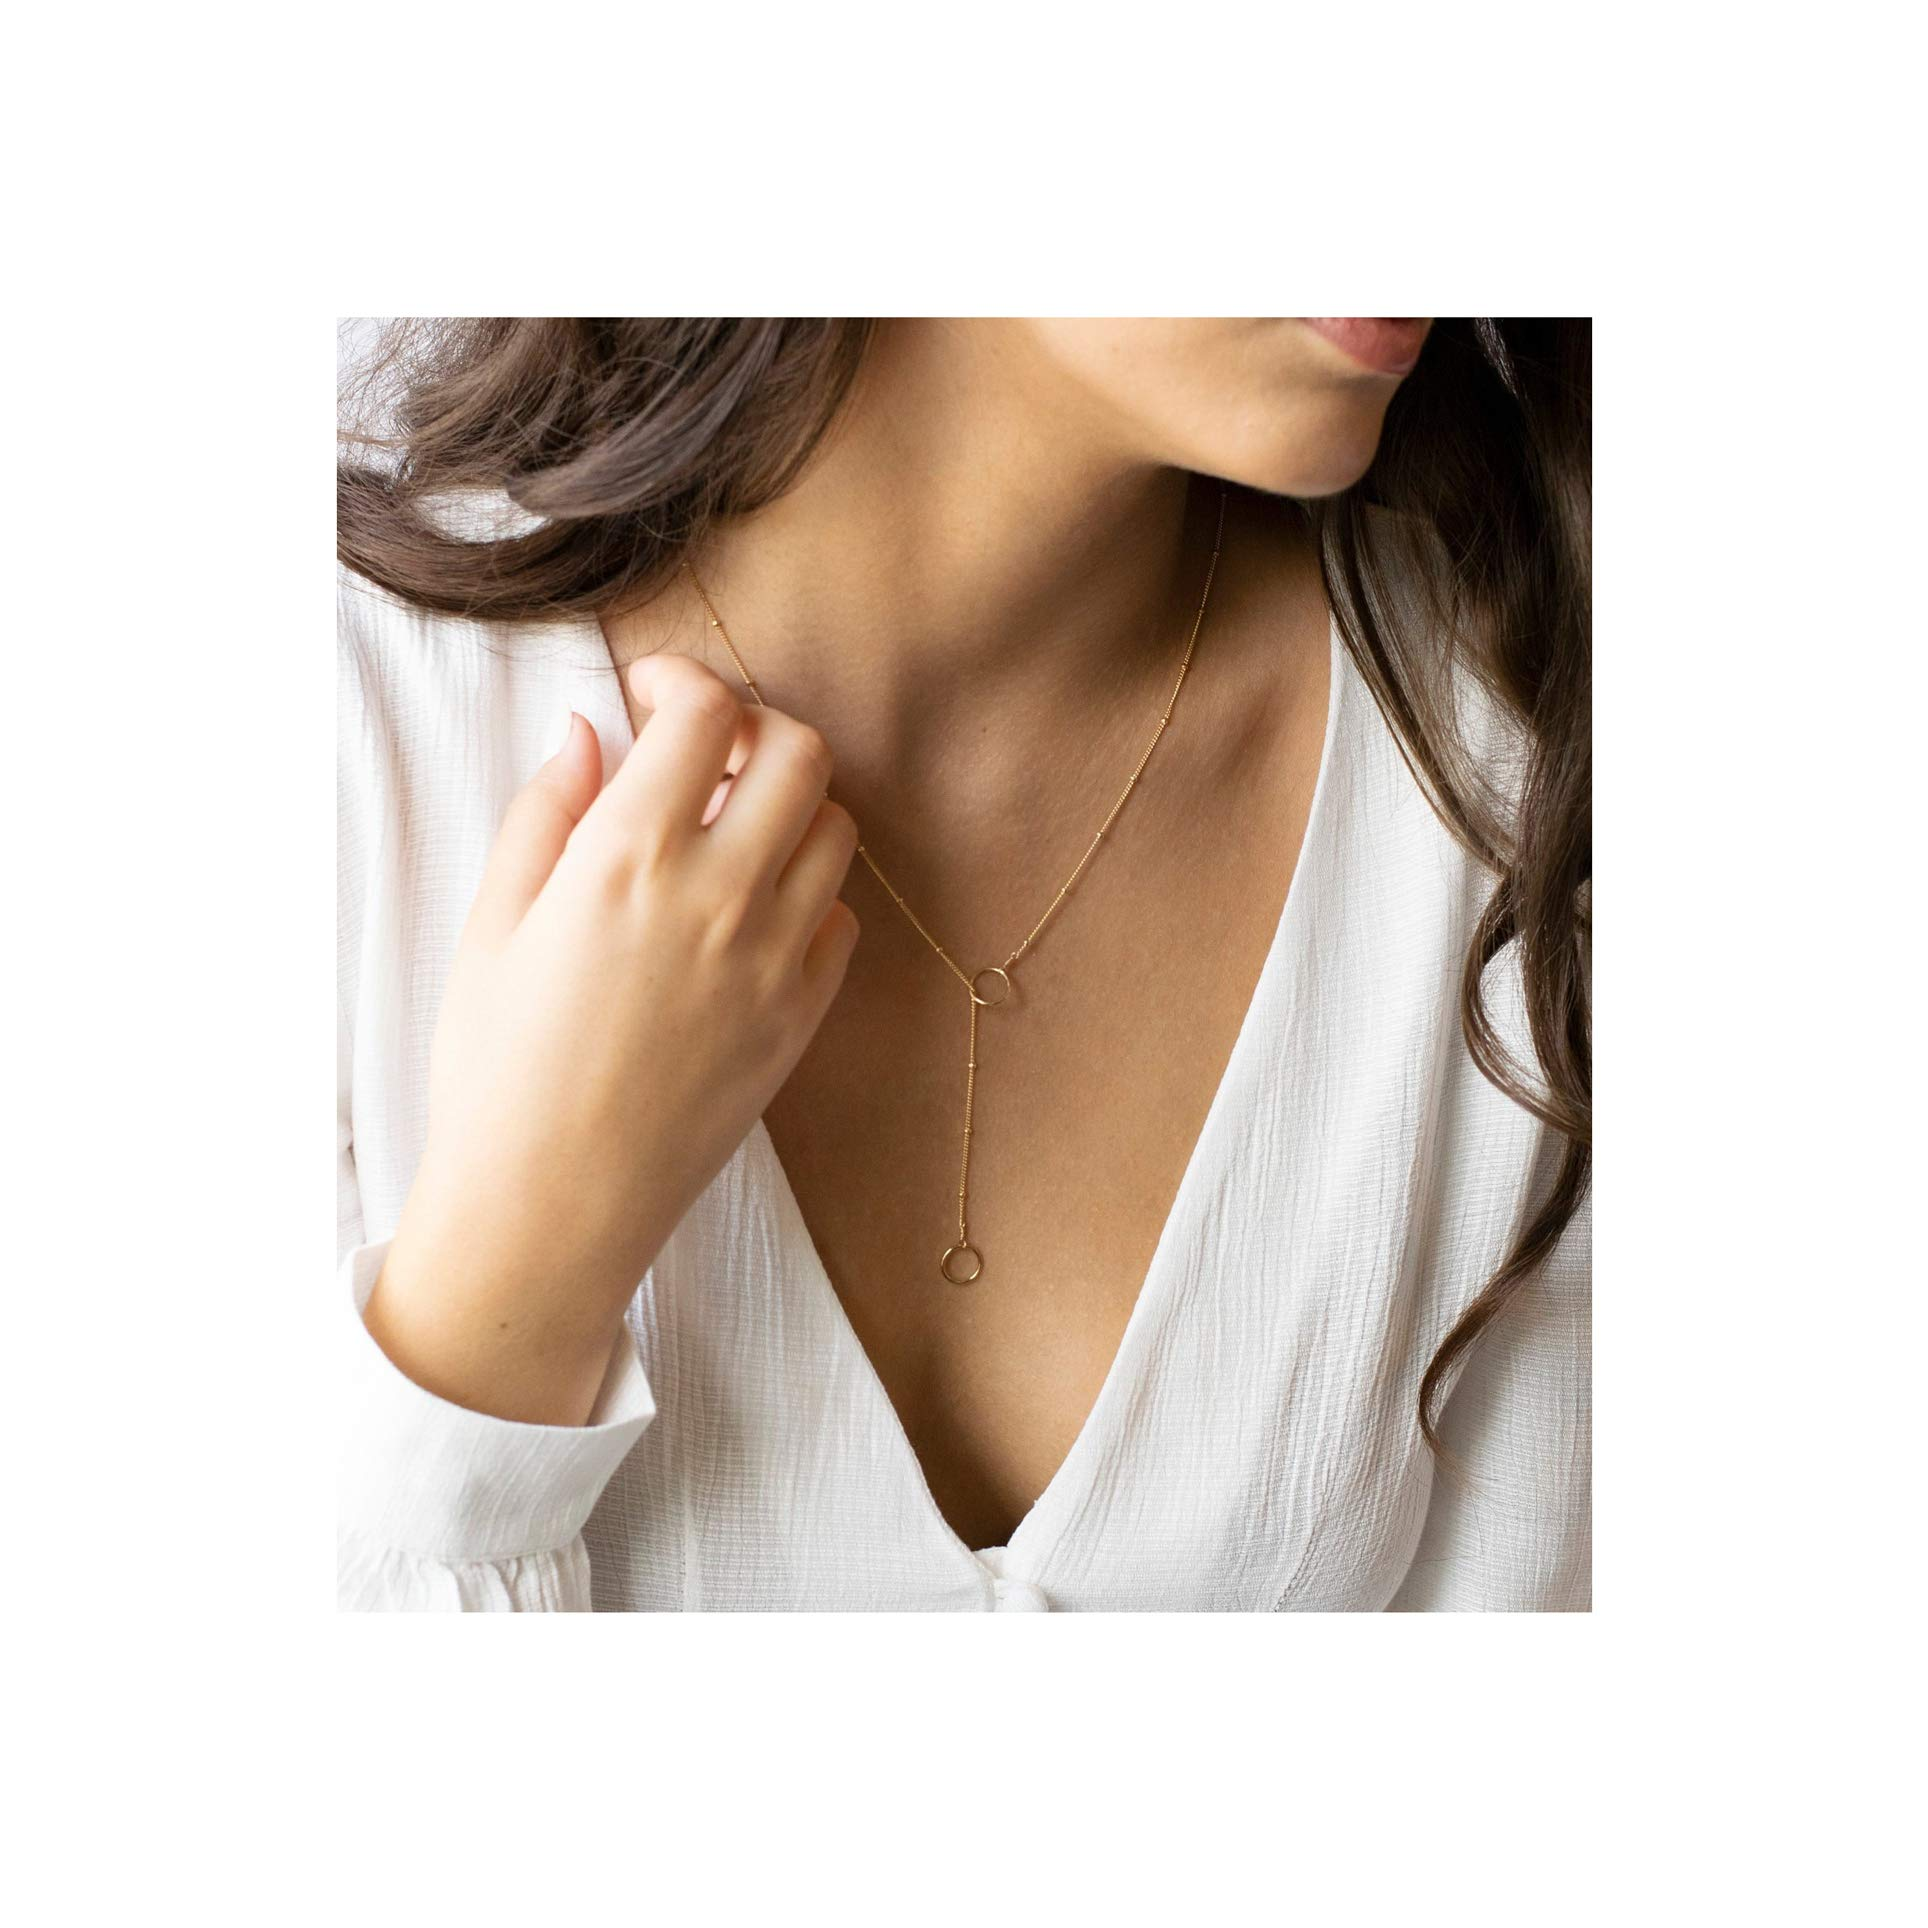 Mevecco Gold Long Lariat Necklace for Women 14K Gold Plated Dainty Turtle Animals/Karma Charm Y Pendant Necklace by Mevecco